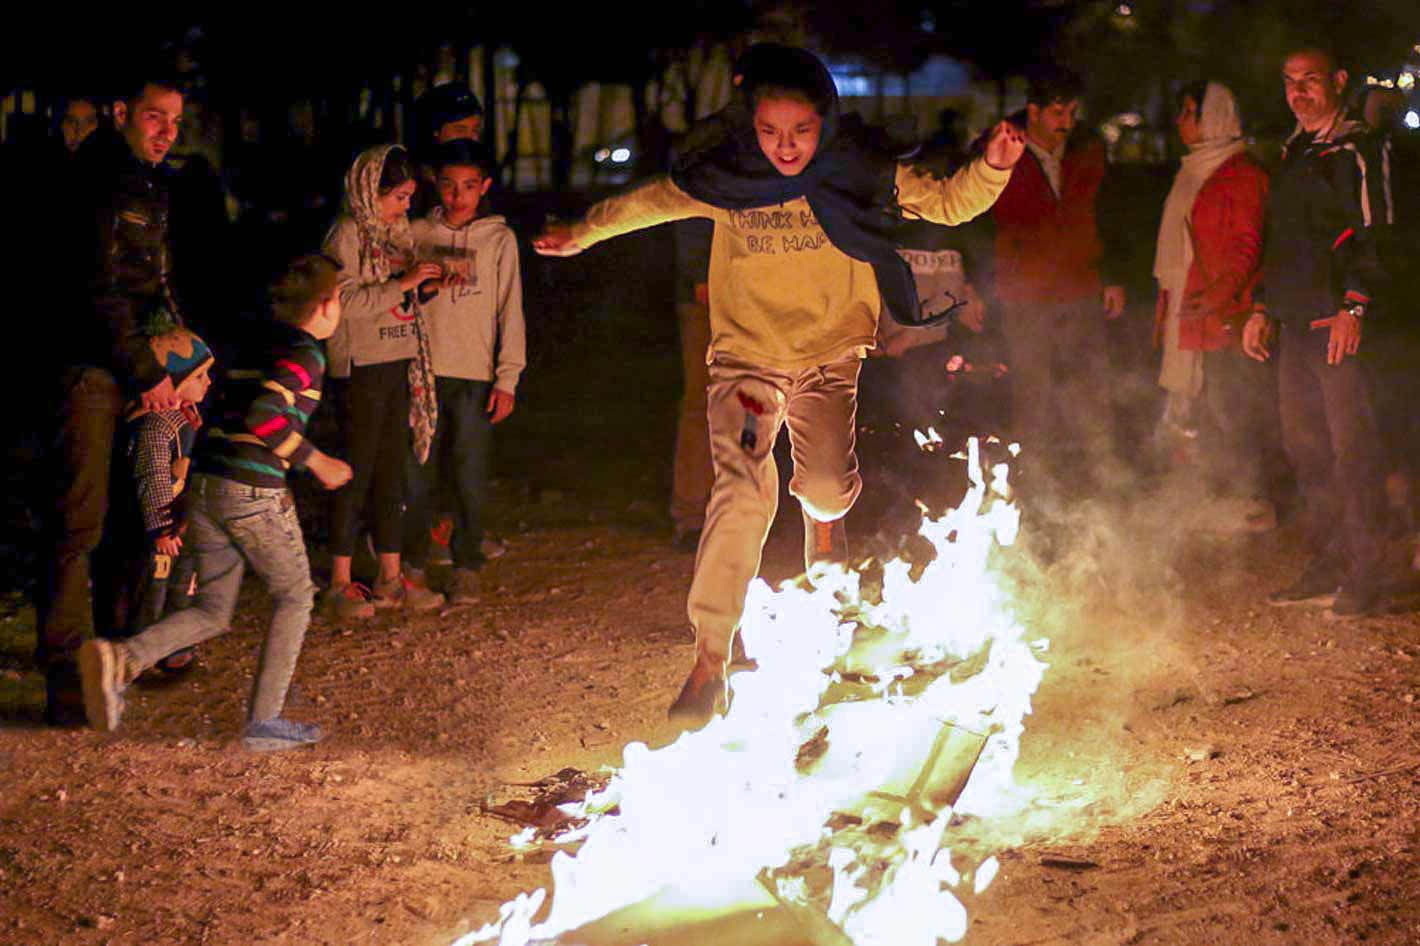 chaharshanbe suri - festival of fire